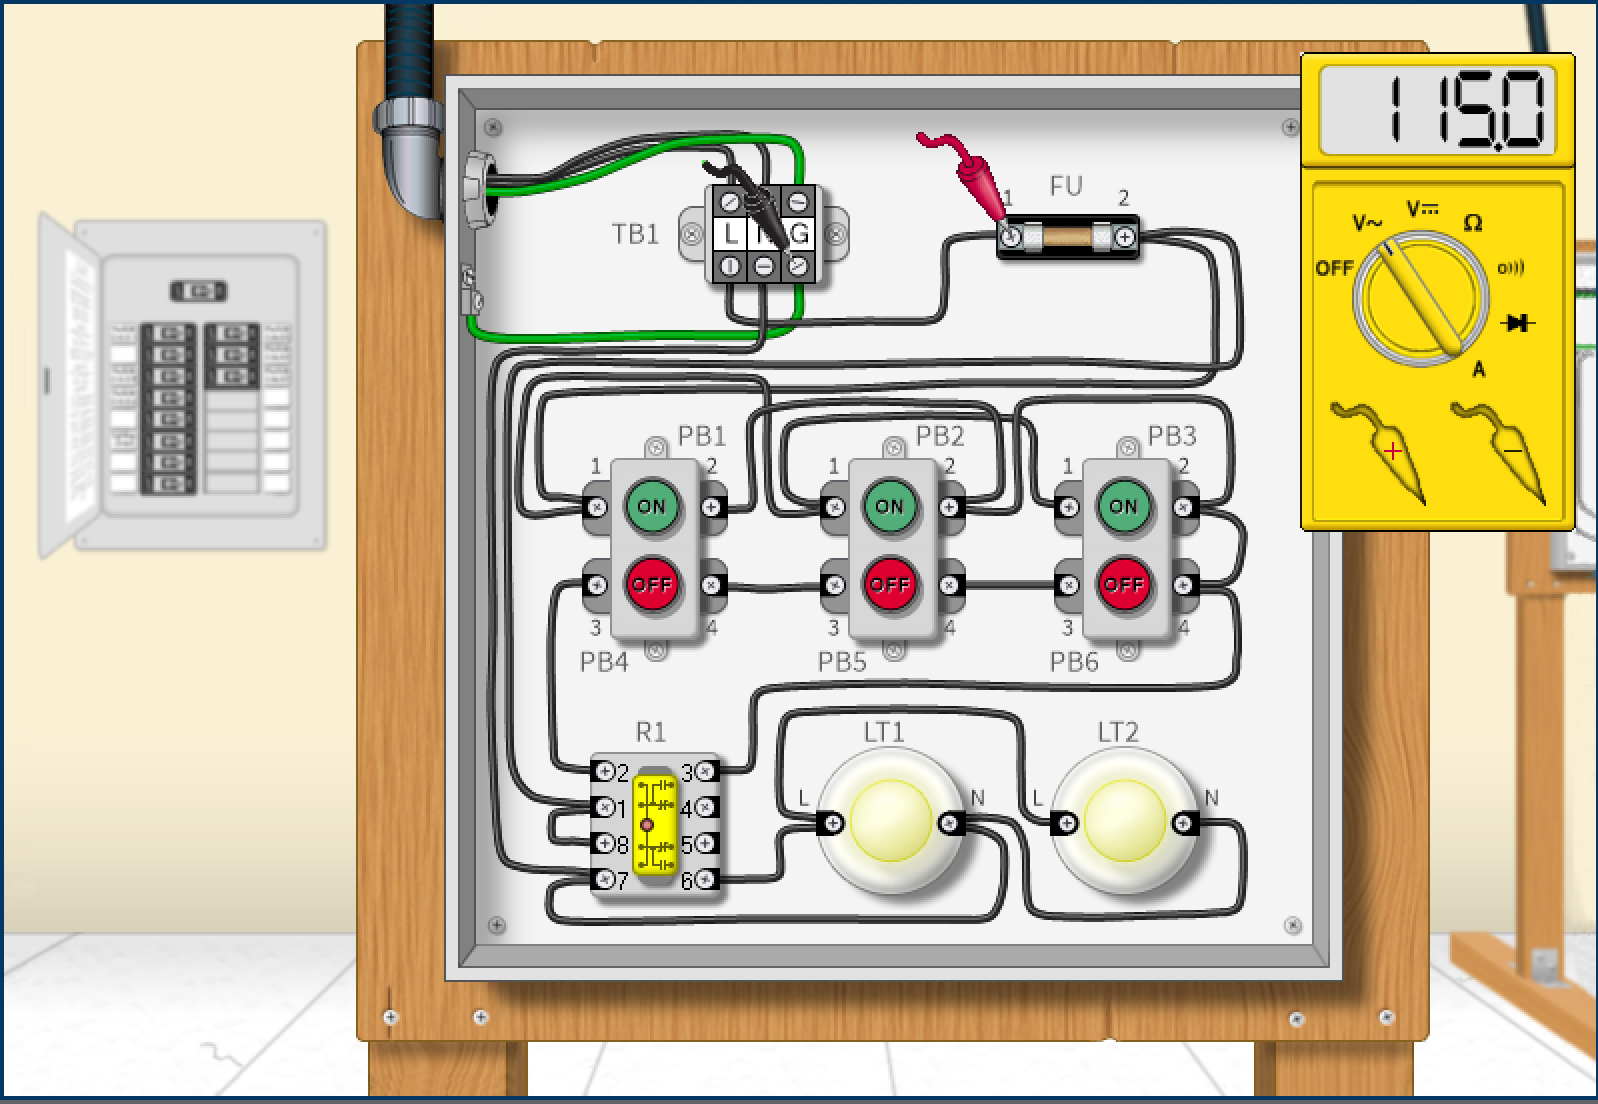 Troubleshooting Electrical Circuits Tec Simutech Multimedia Software Is Very Useful When Simulating This Type Of Circuit Diagram The Simulations